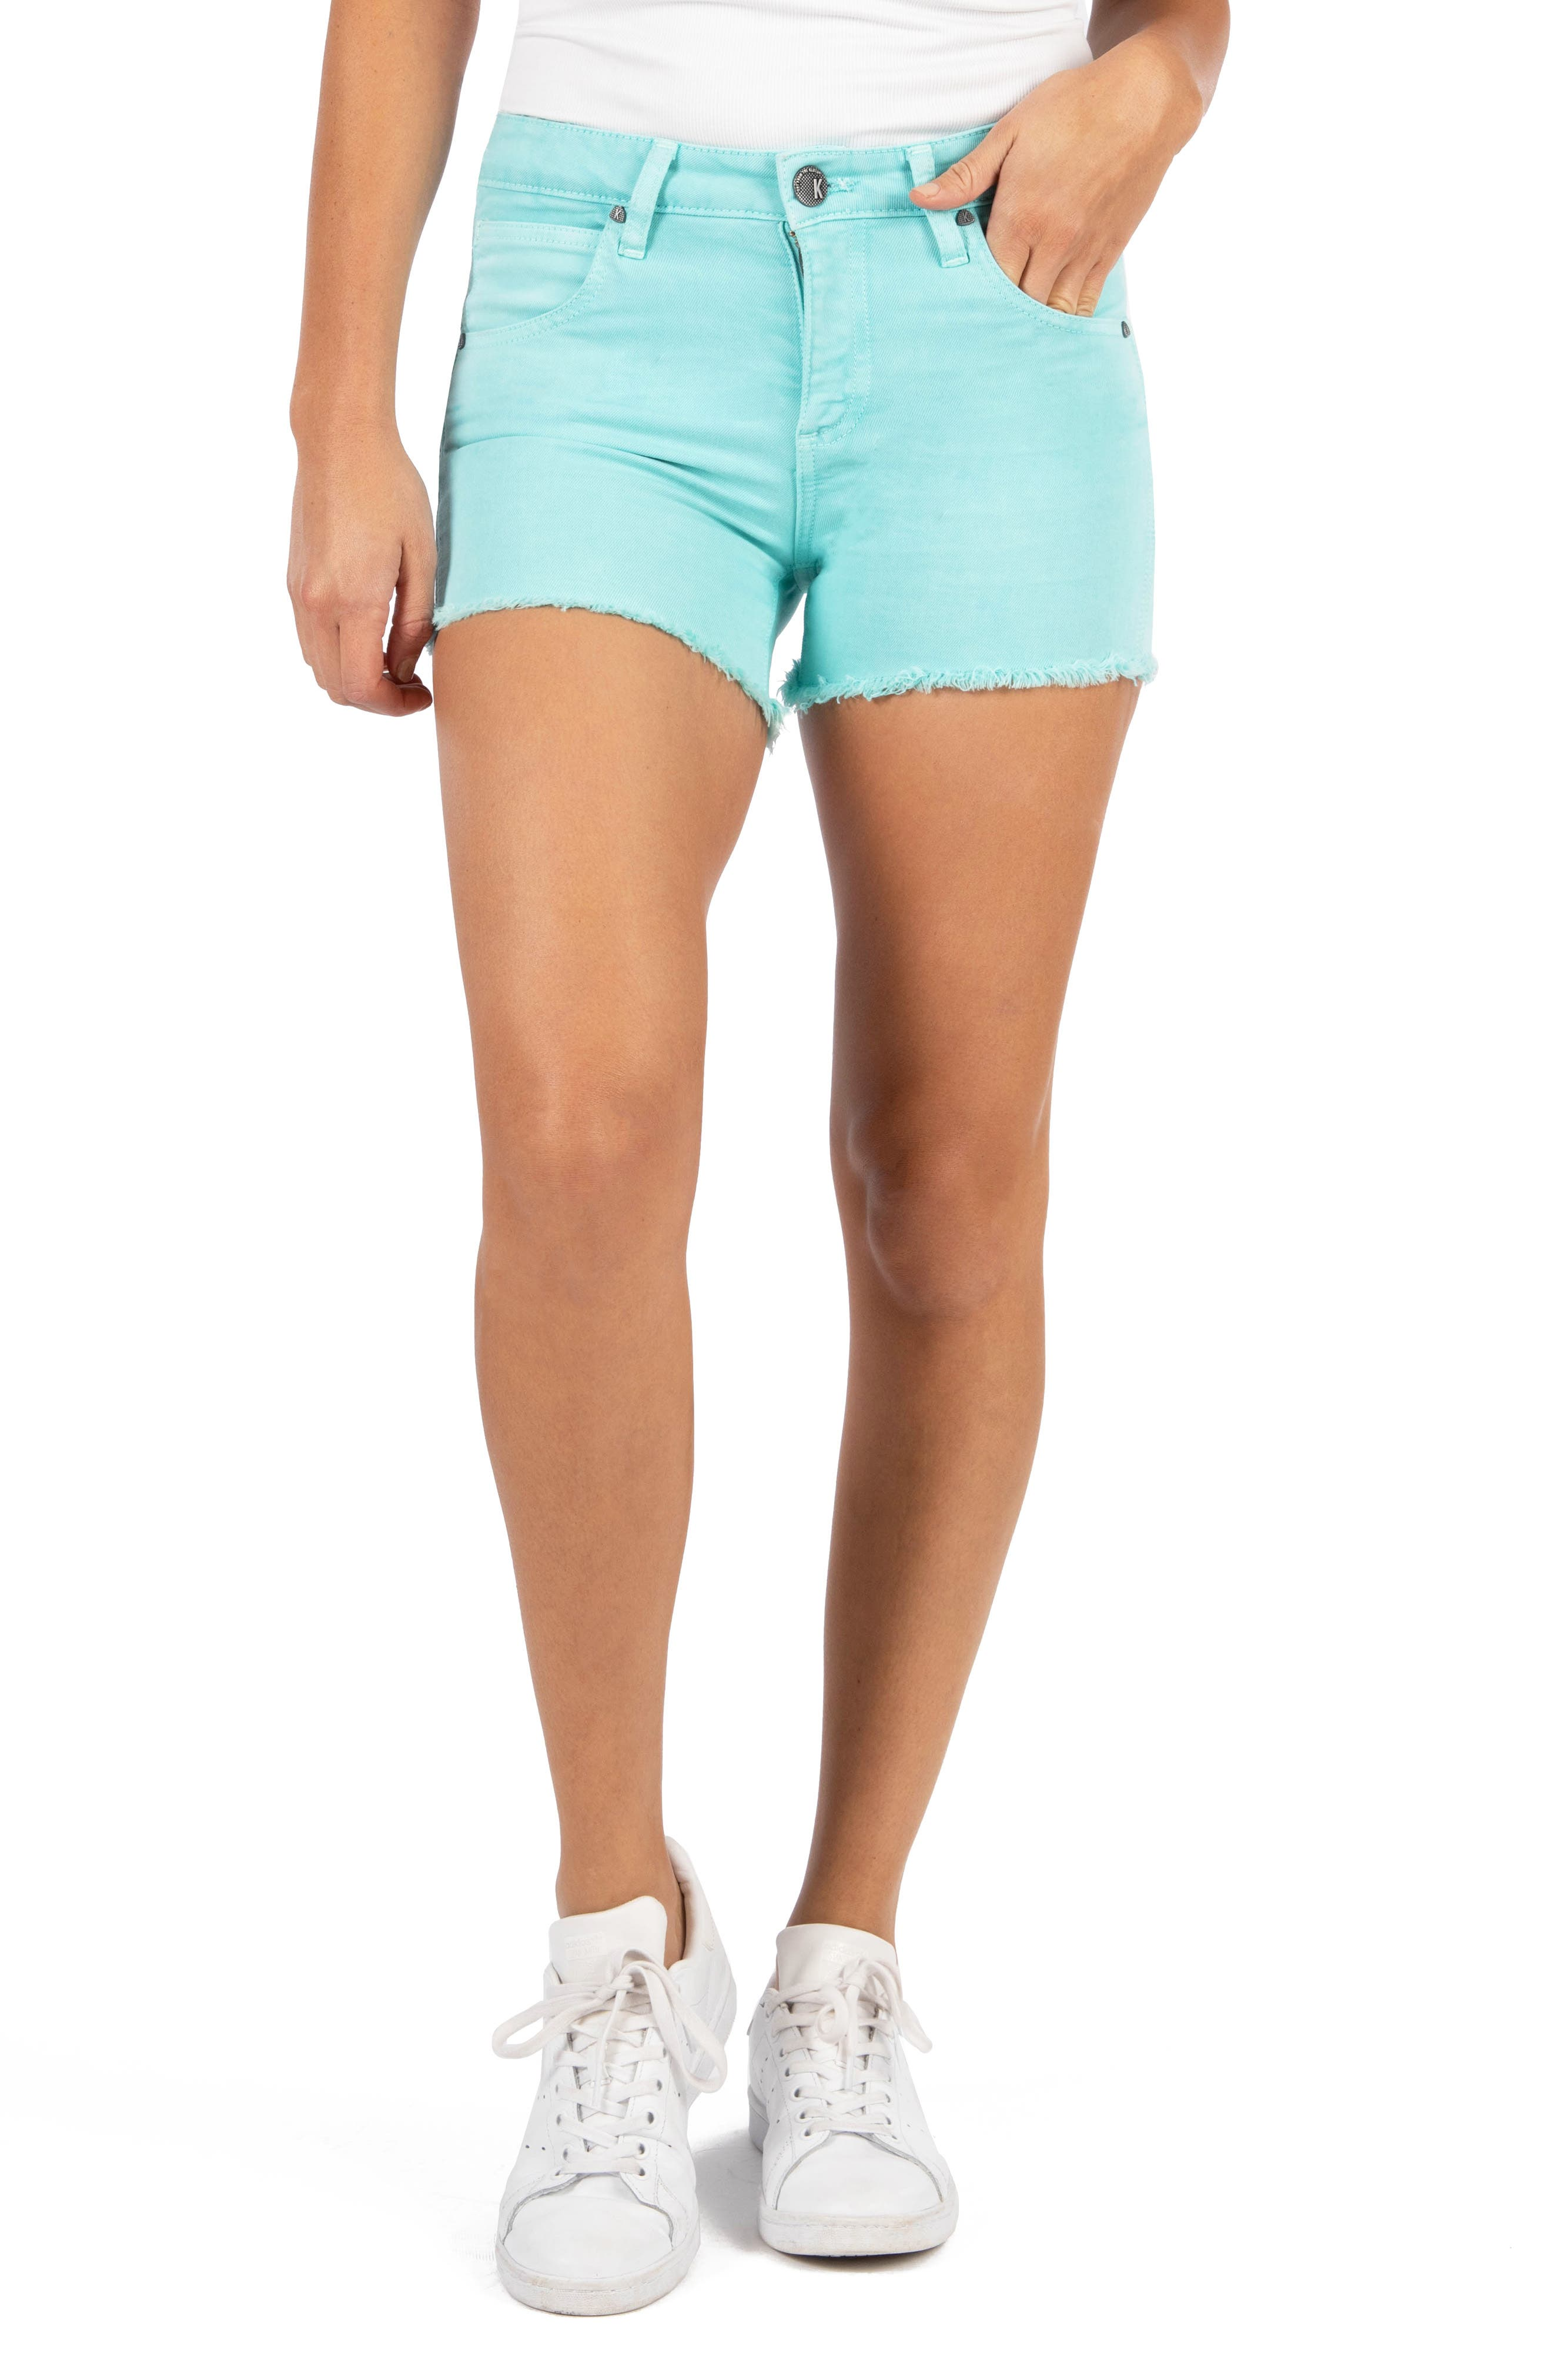 Fresh color adds to the must-have charm of these frayed-hem shorts cut from stretch-cotton denim. Style Name: Kut From The Kloth Gidget Fray Hem Shorts (Sea Green). Style Number: 6018147. Available in stores.